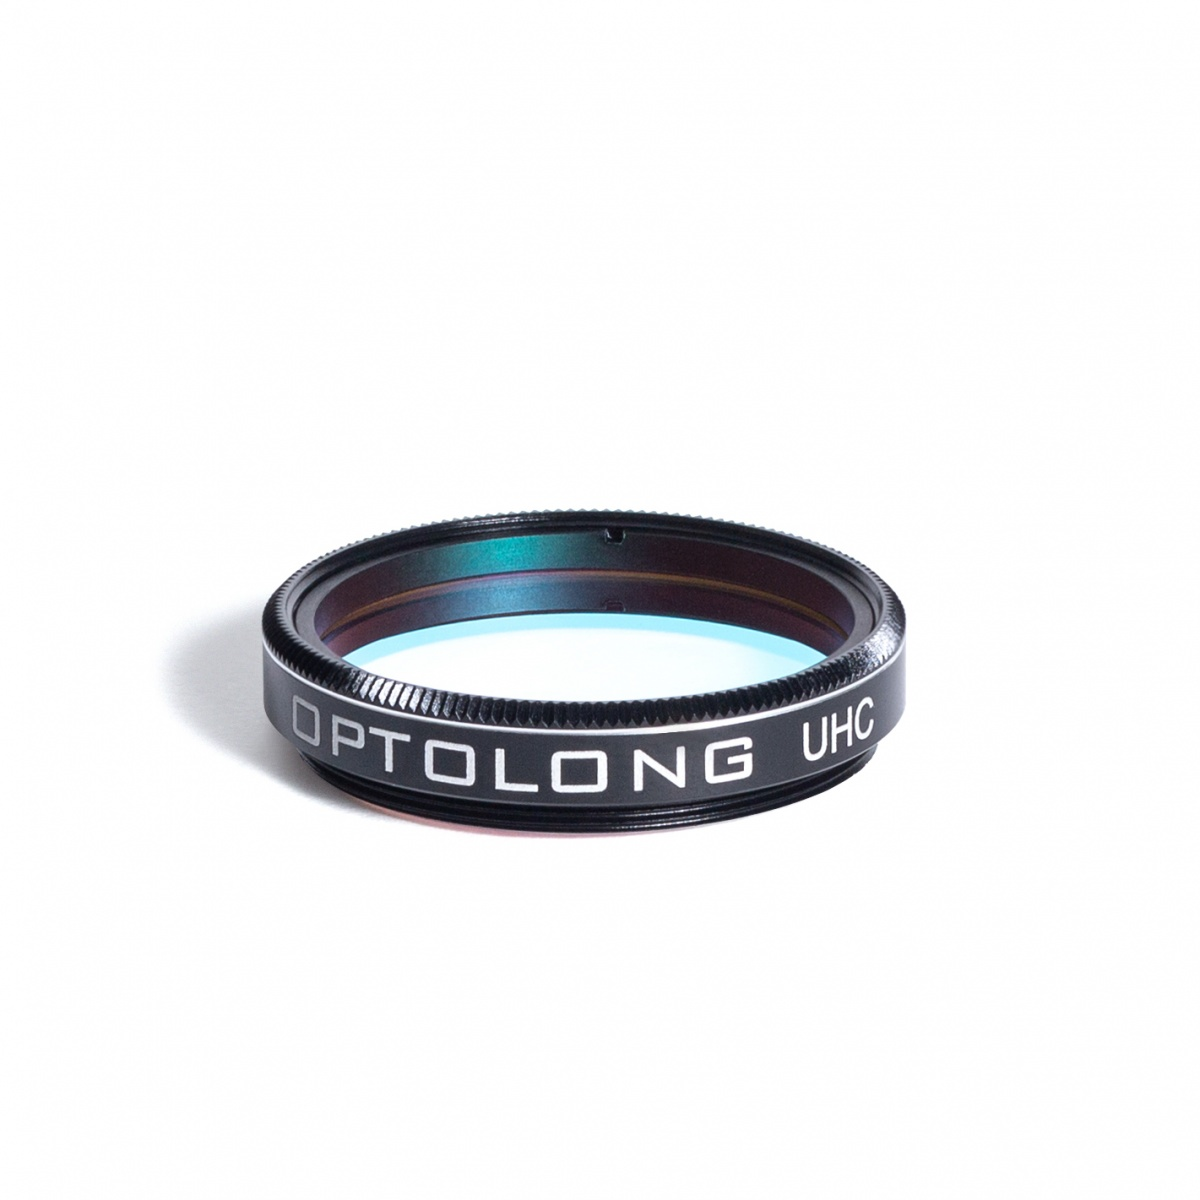 Optolong UHC Light Pollution Filter